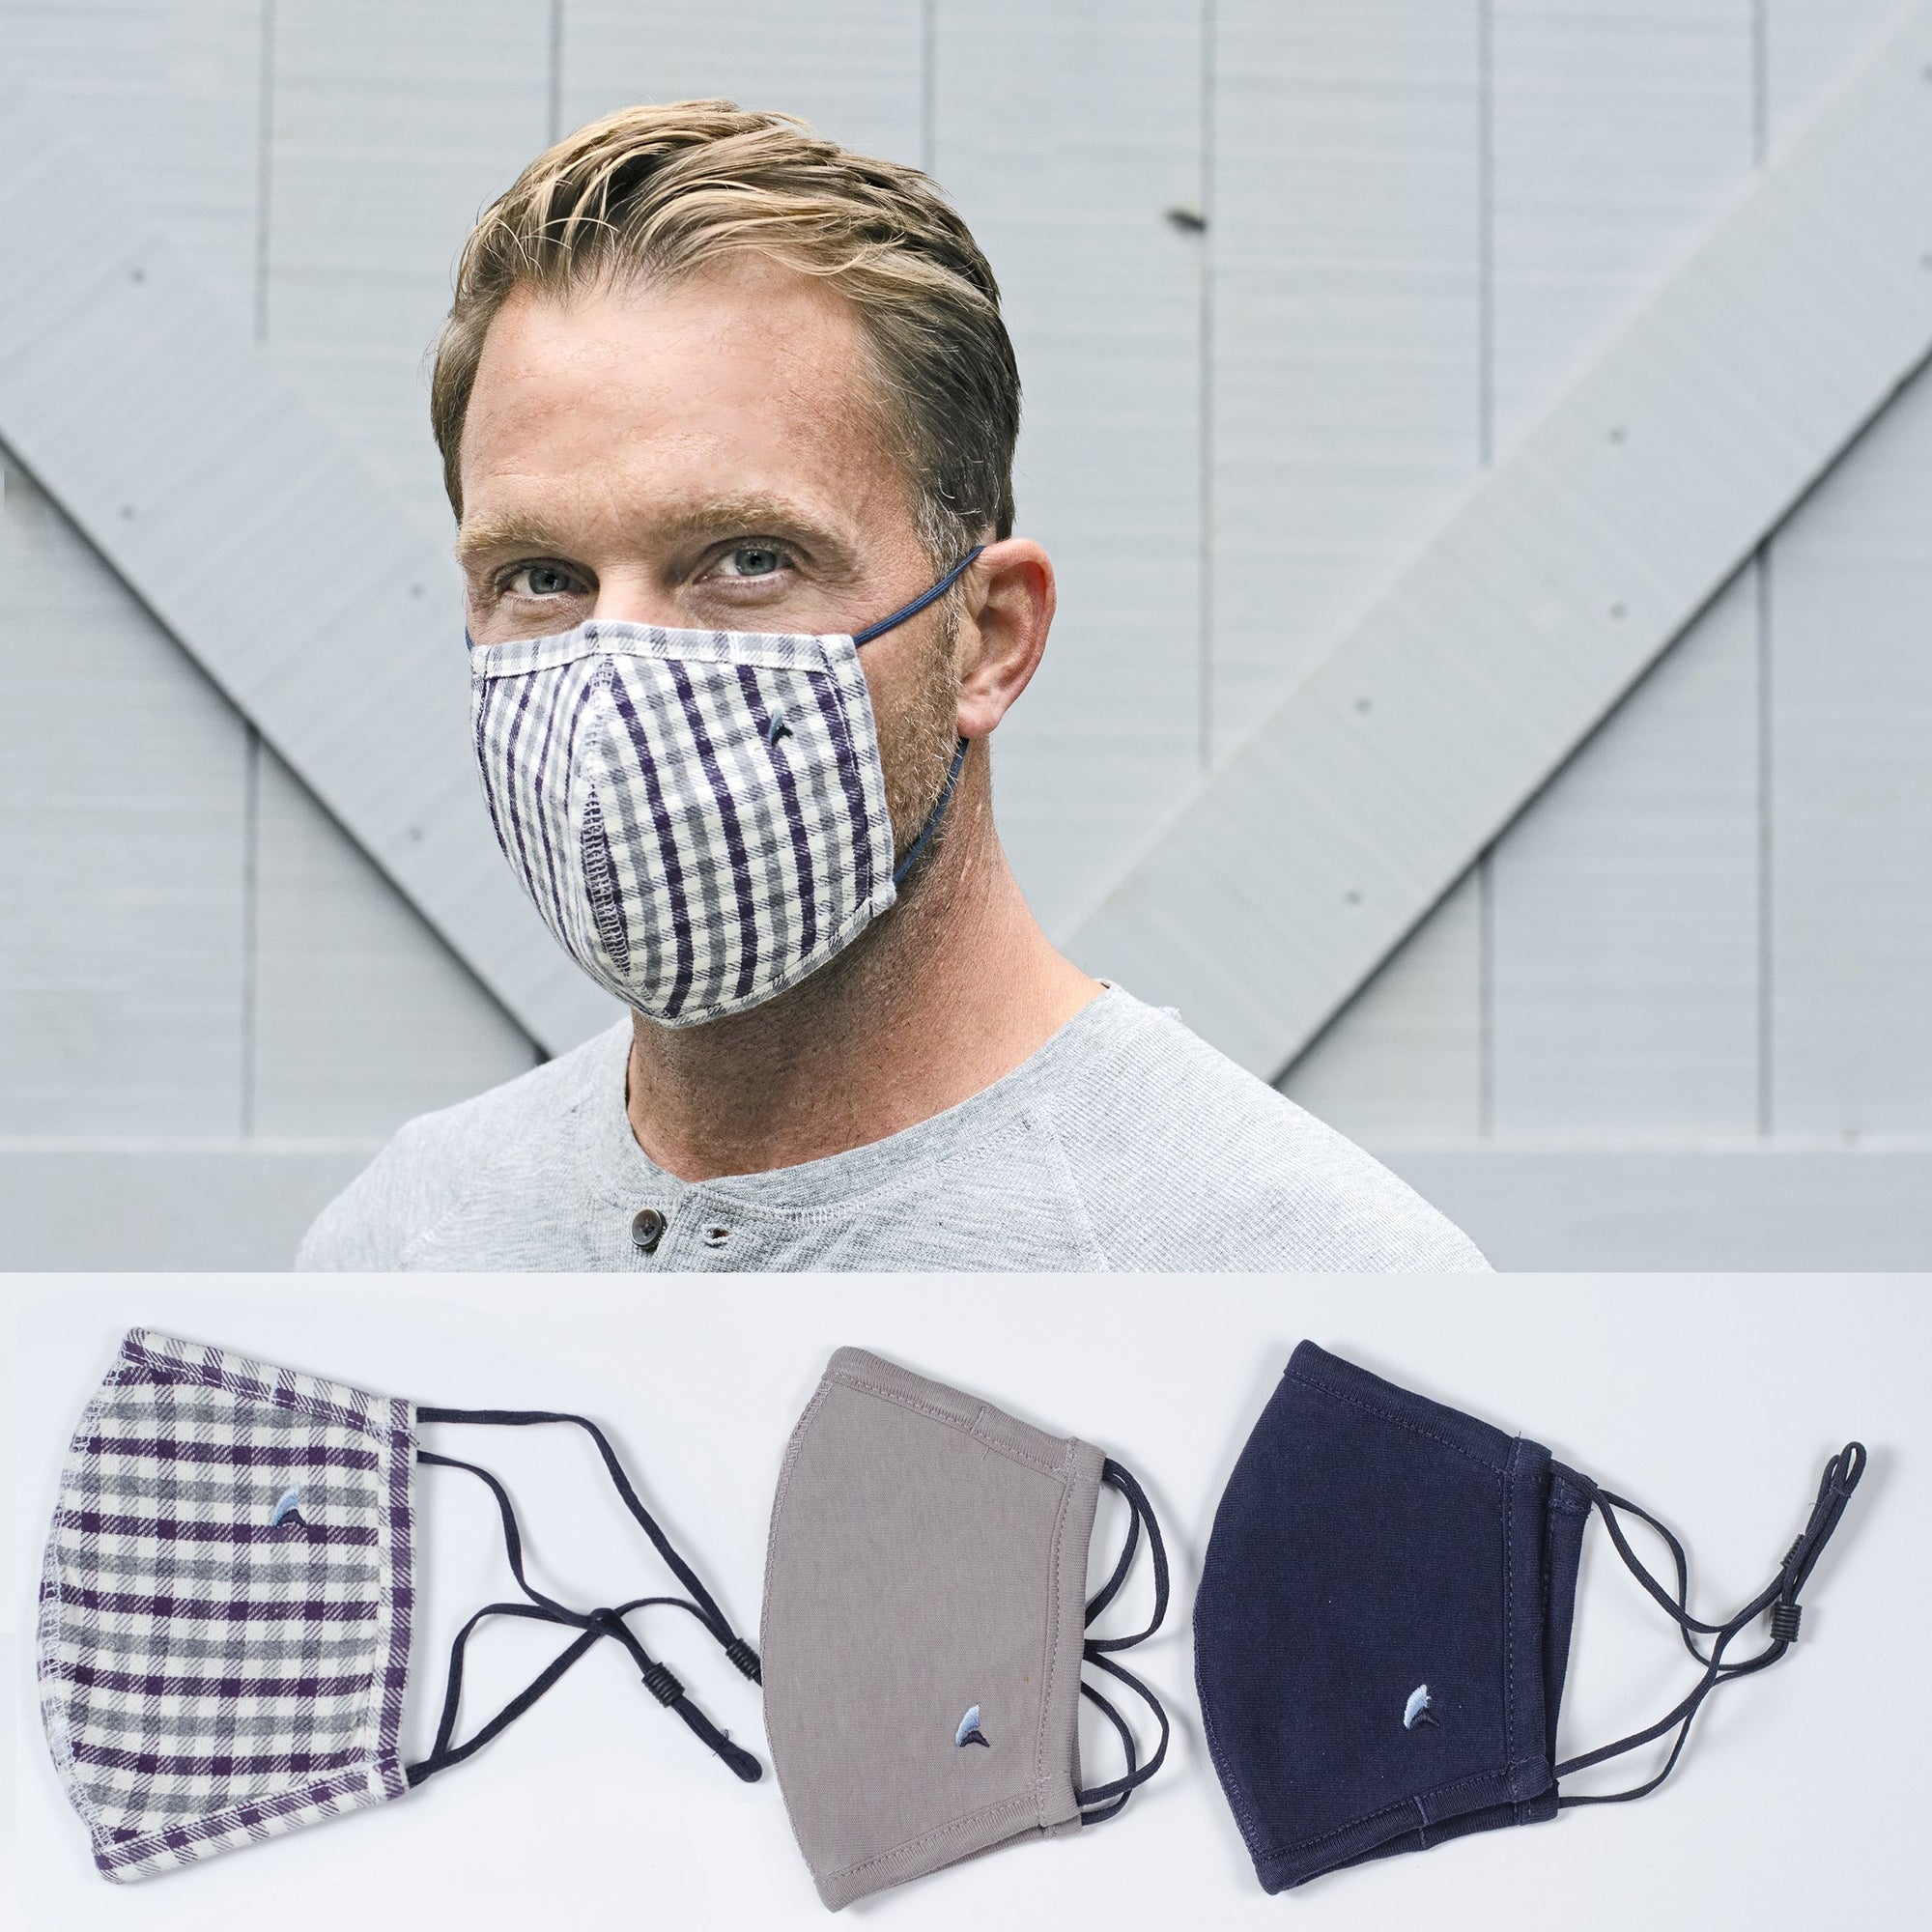 Fabric Face Covering(Nightshade Tricolor Gingham/Navy/Grey  3-Pack)